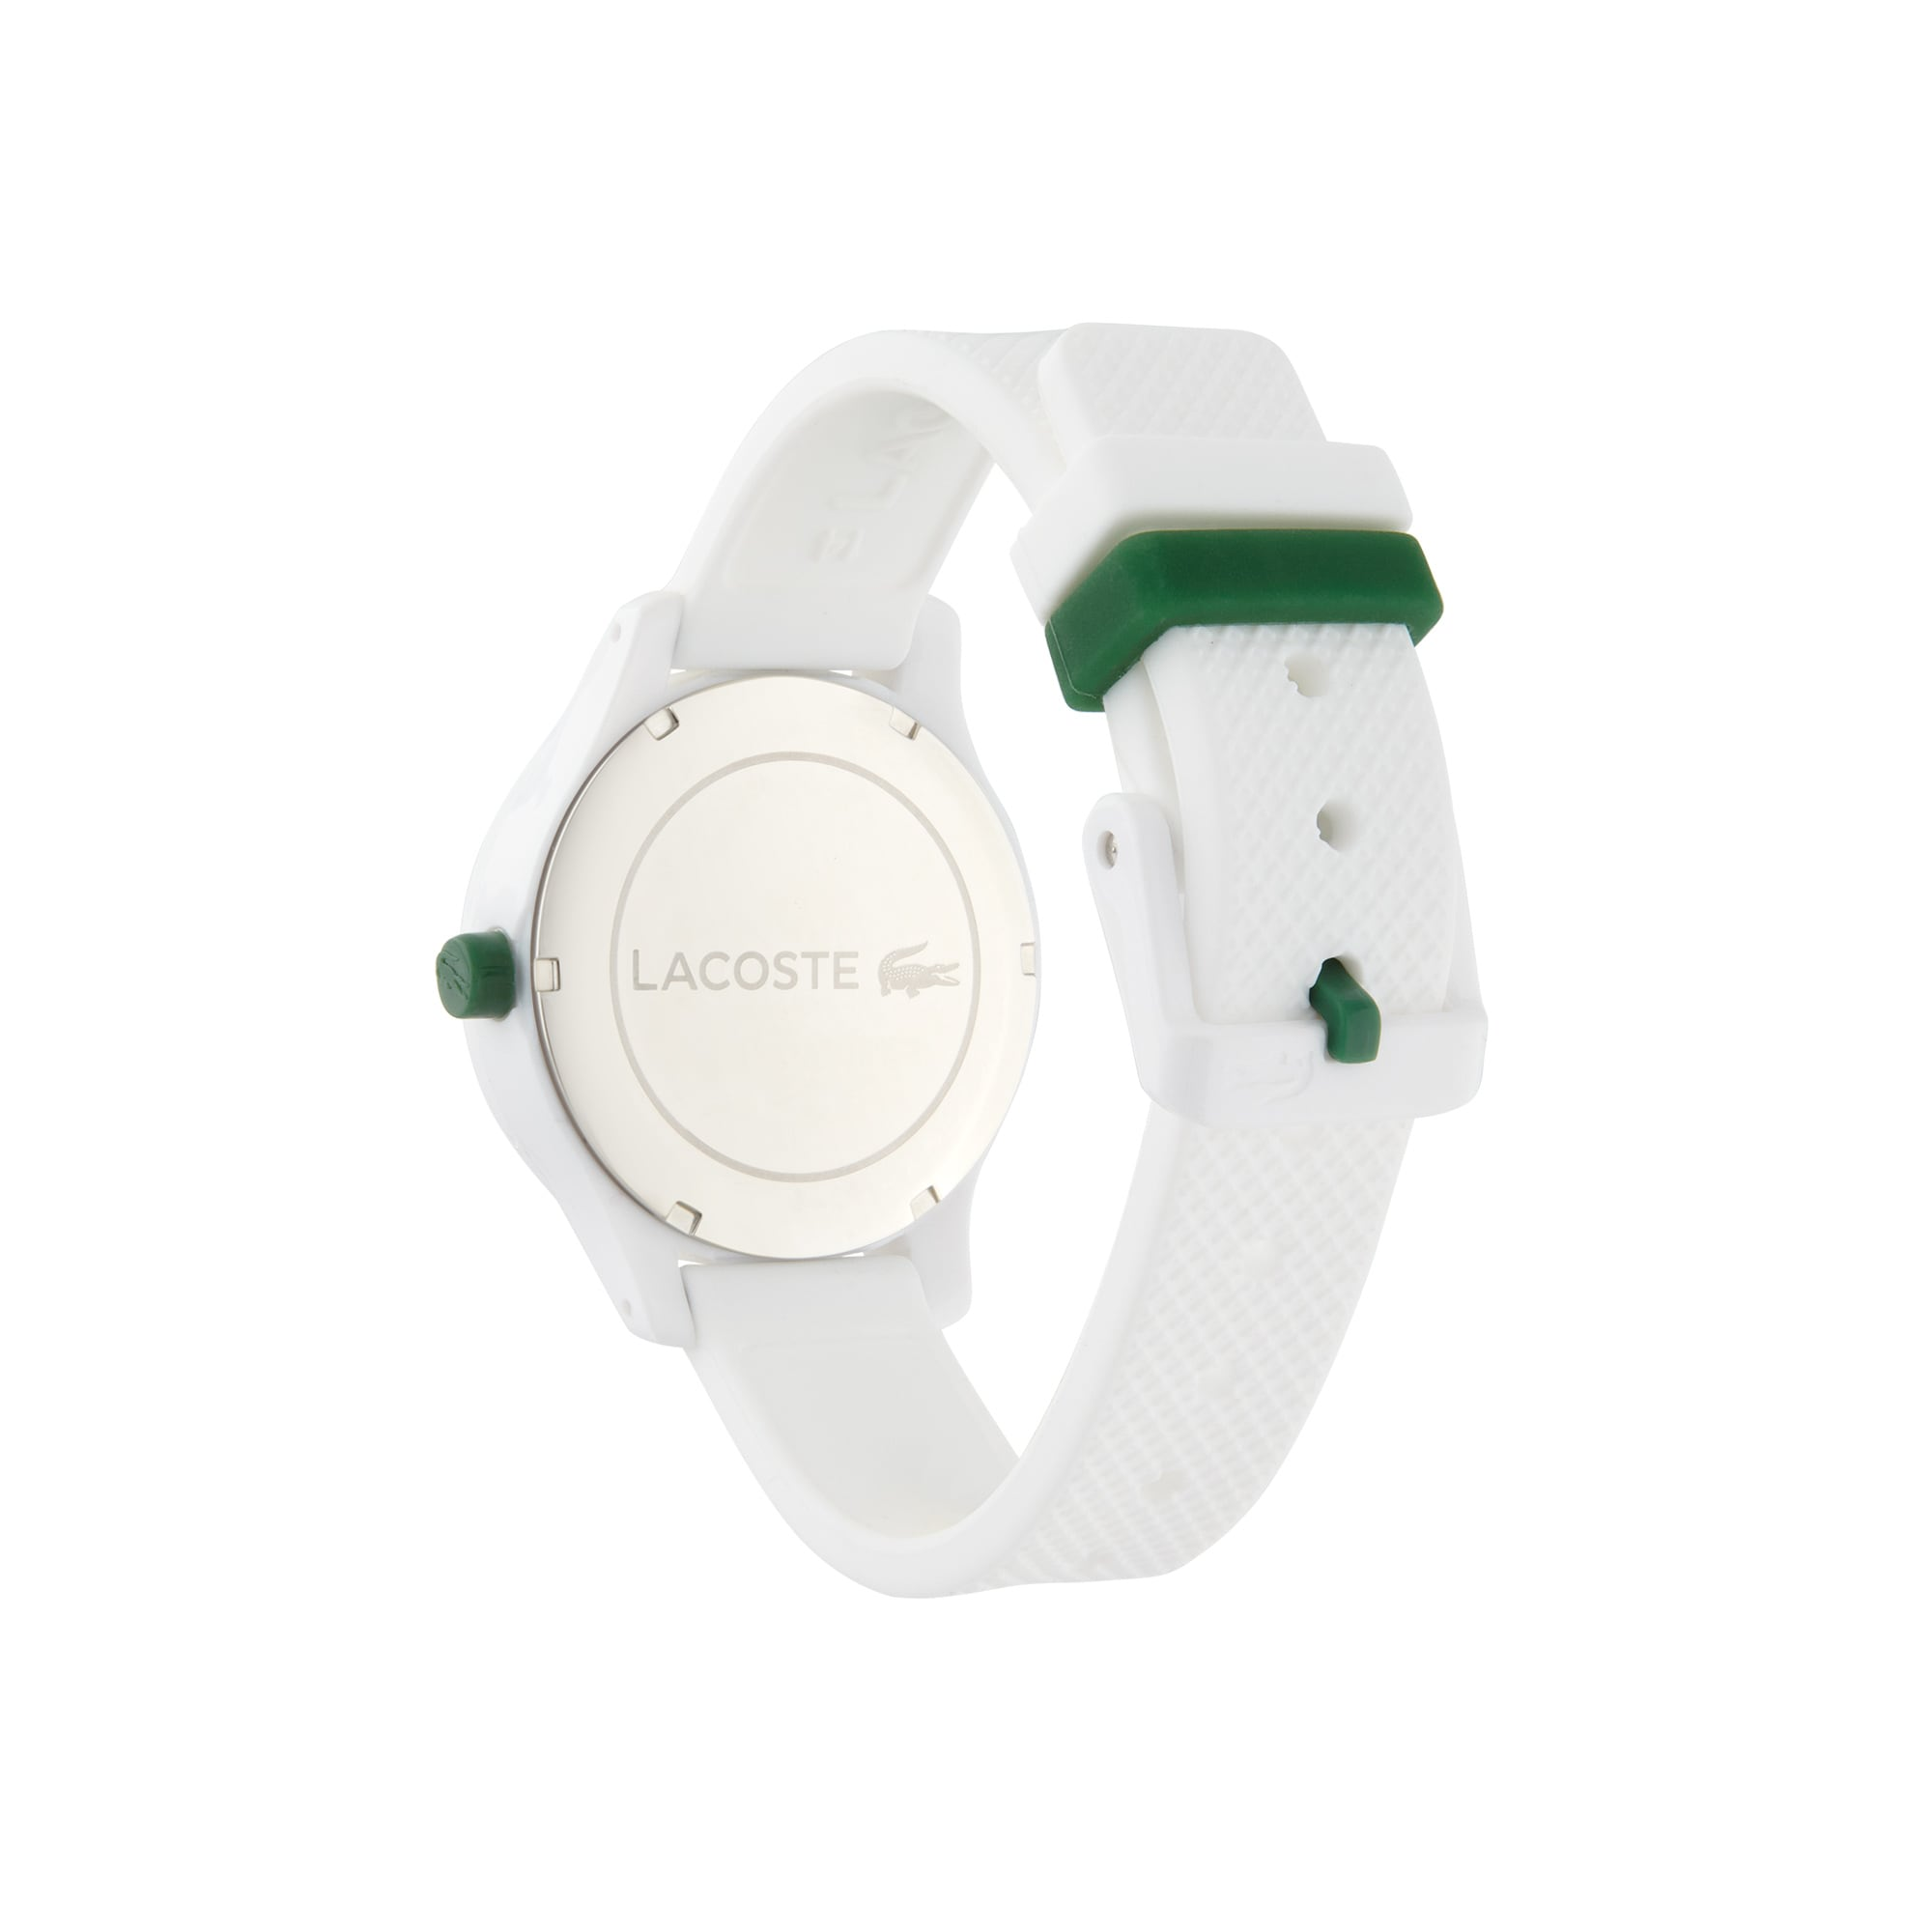 Kids Lacoste 12.12 Watch with White Silicone Strap